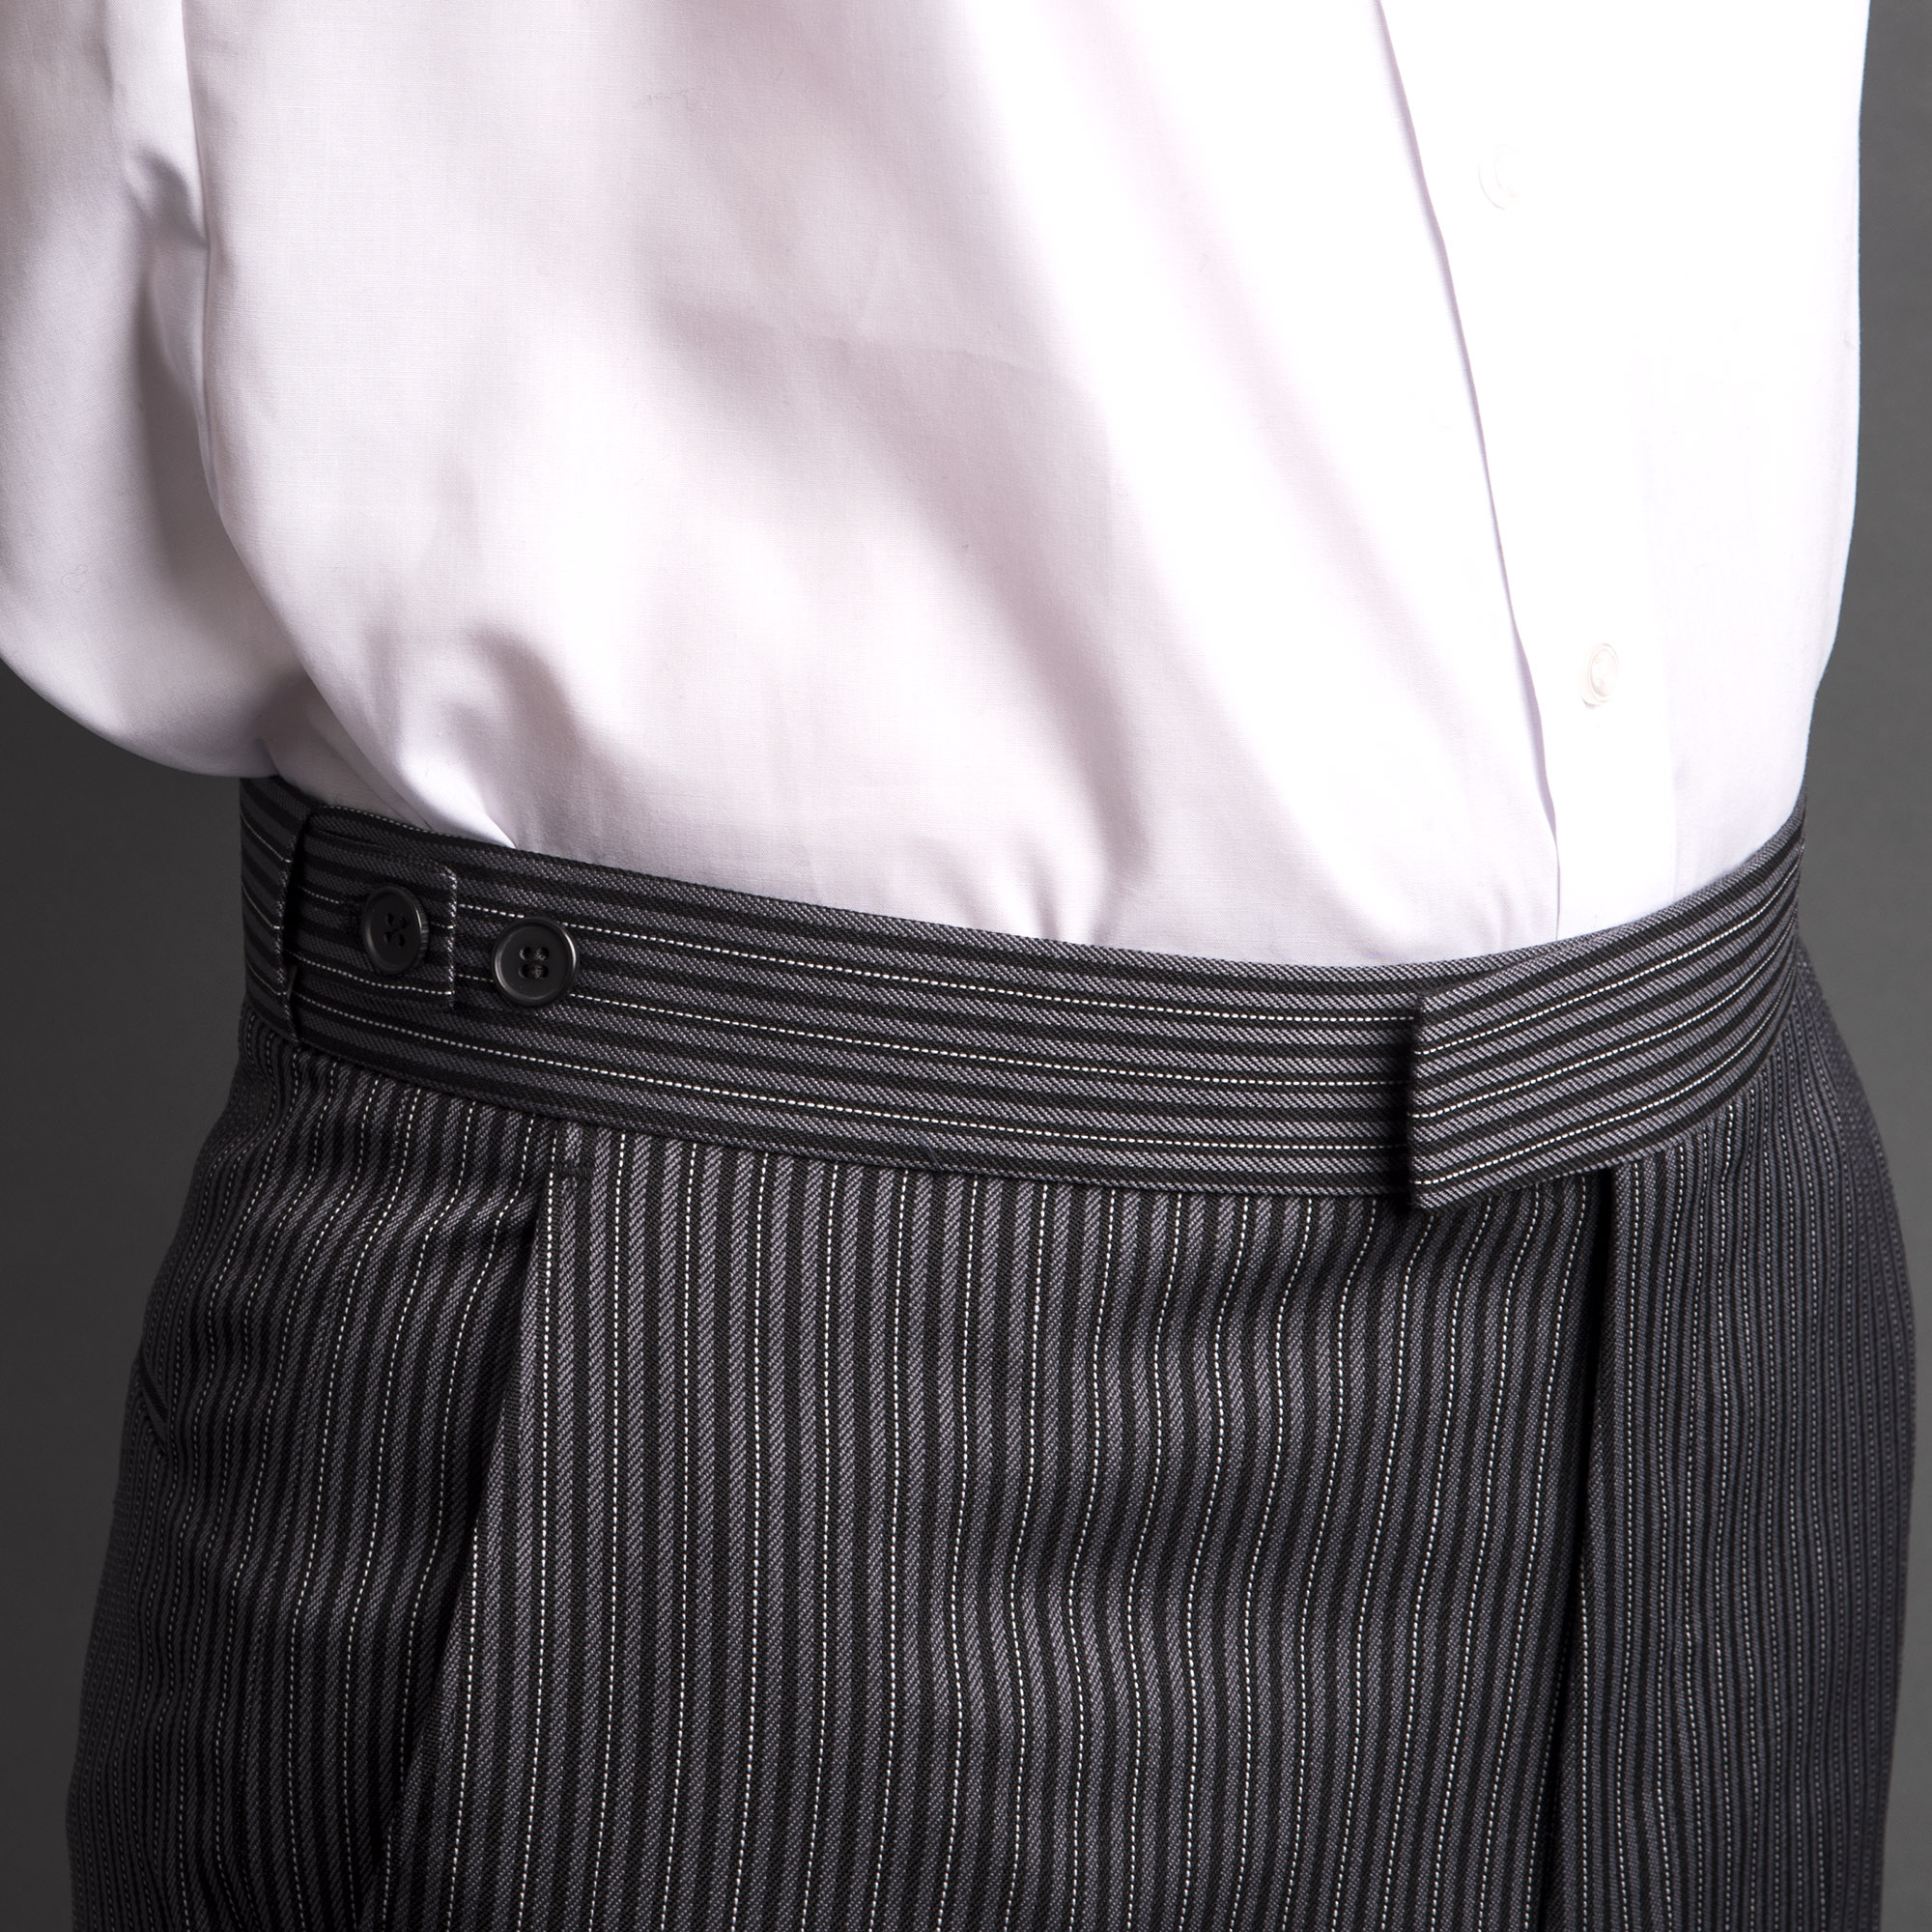 Top of Wedding Trousers Symonds of Hereford.jpg